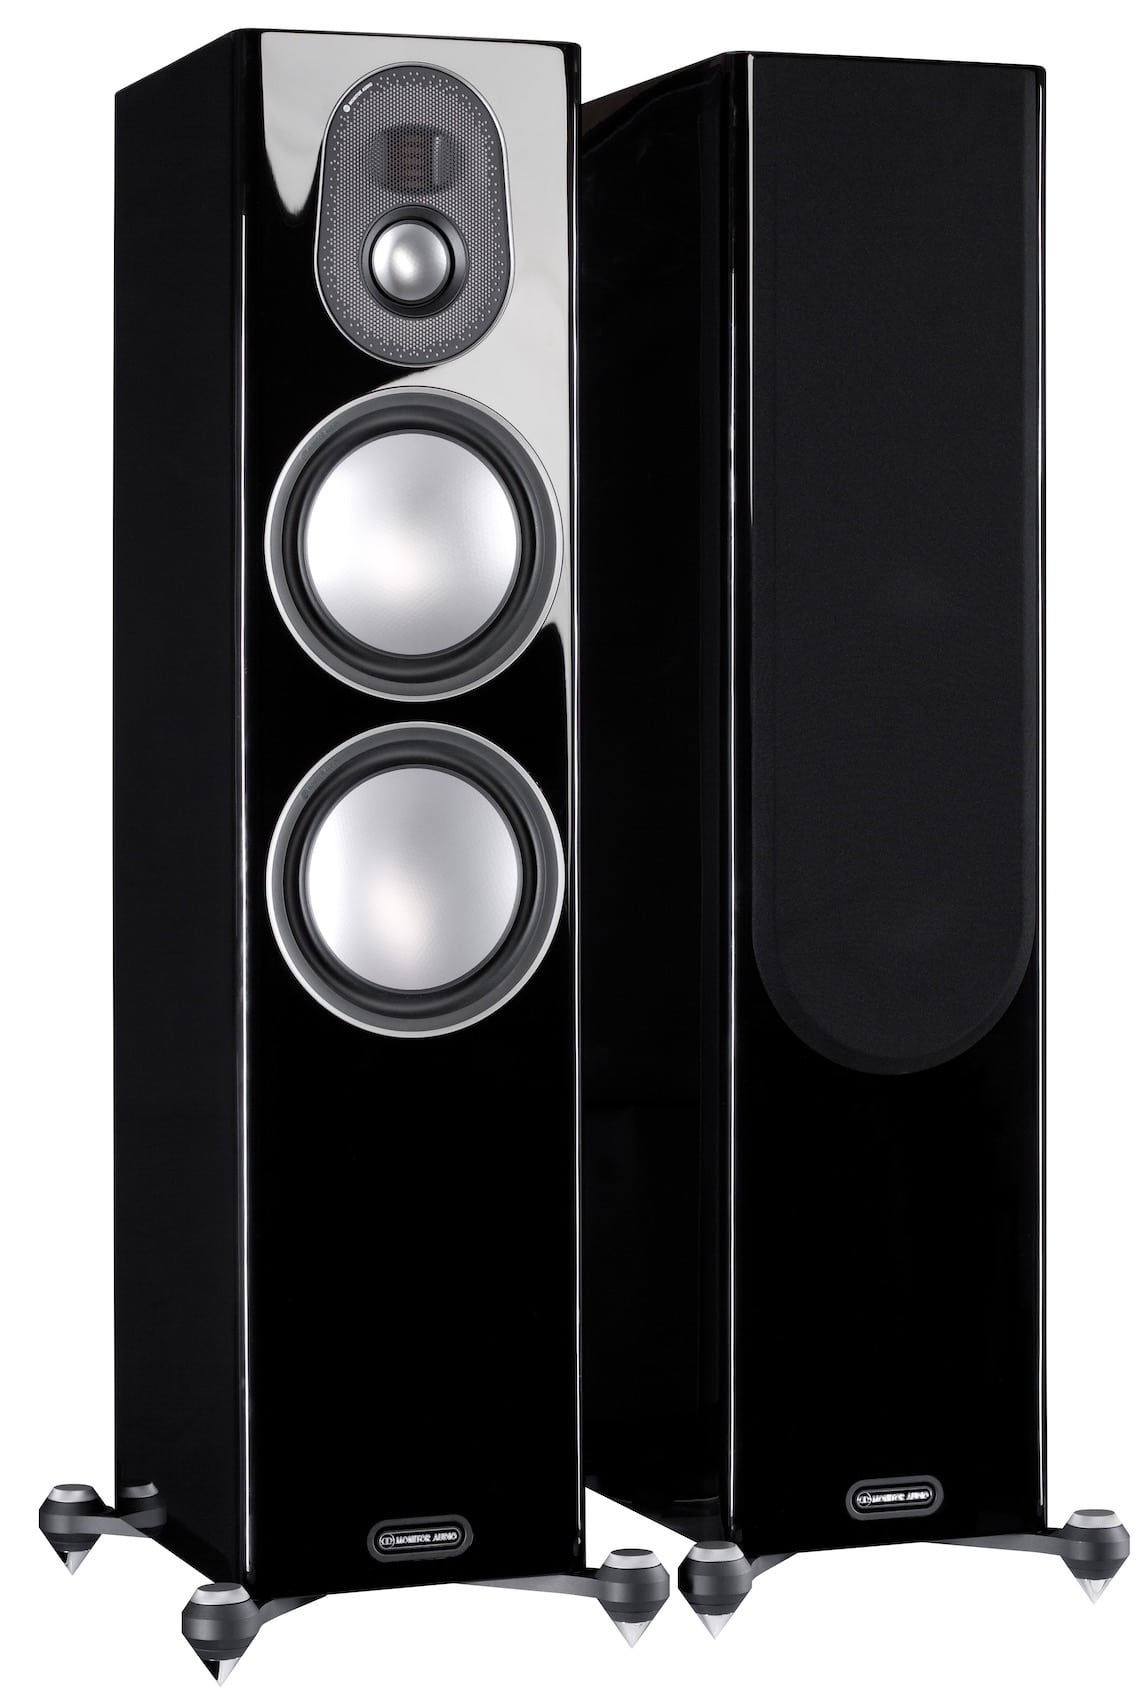 Gold Series Speakers From Monitor Audio